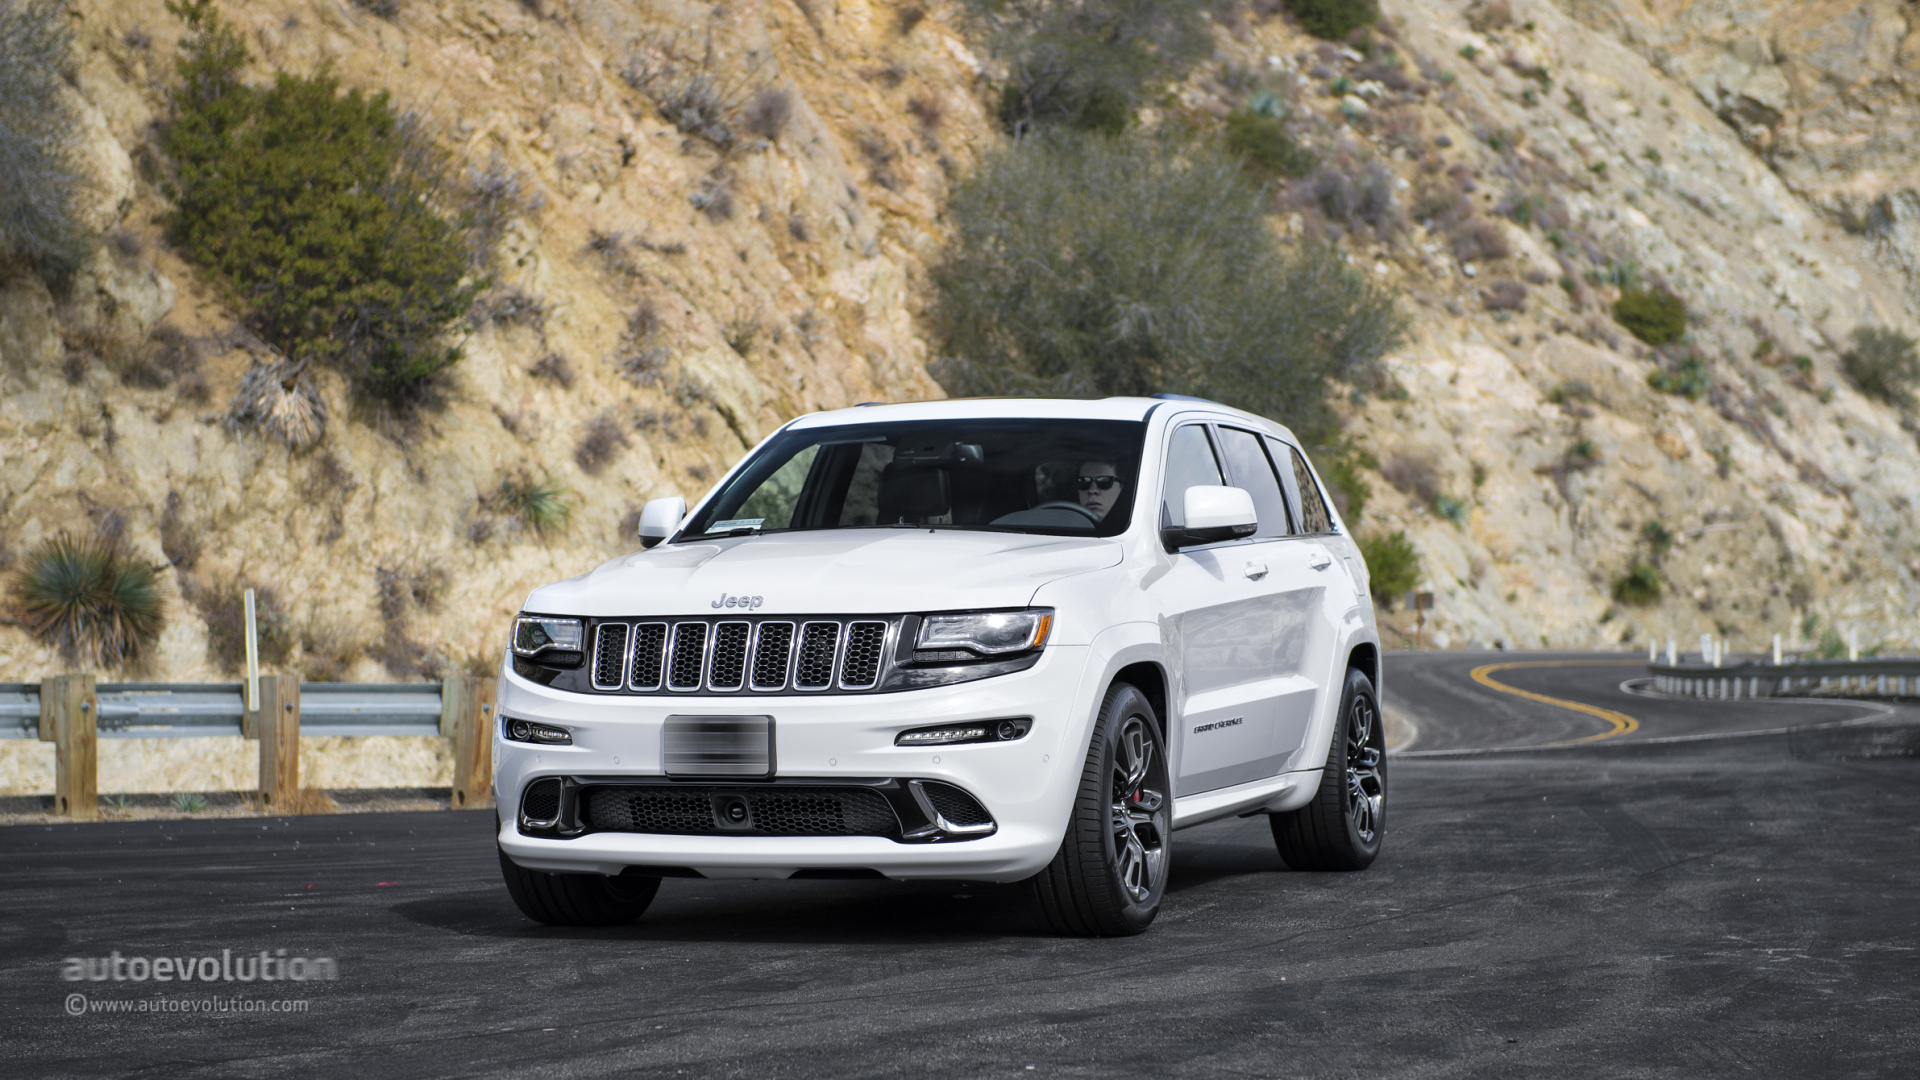 Cherokee Truck Sales >> 5 Fiat Chrysler Brands Come in Last in 2015 J.D. Power Customer Service Index - autoevolution